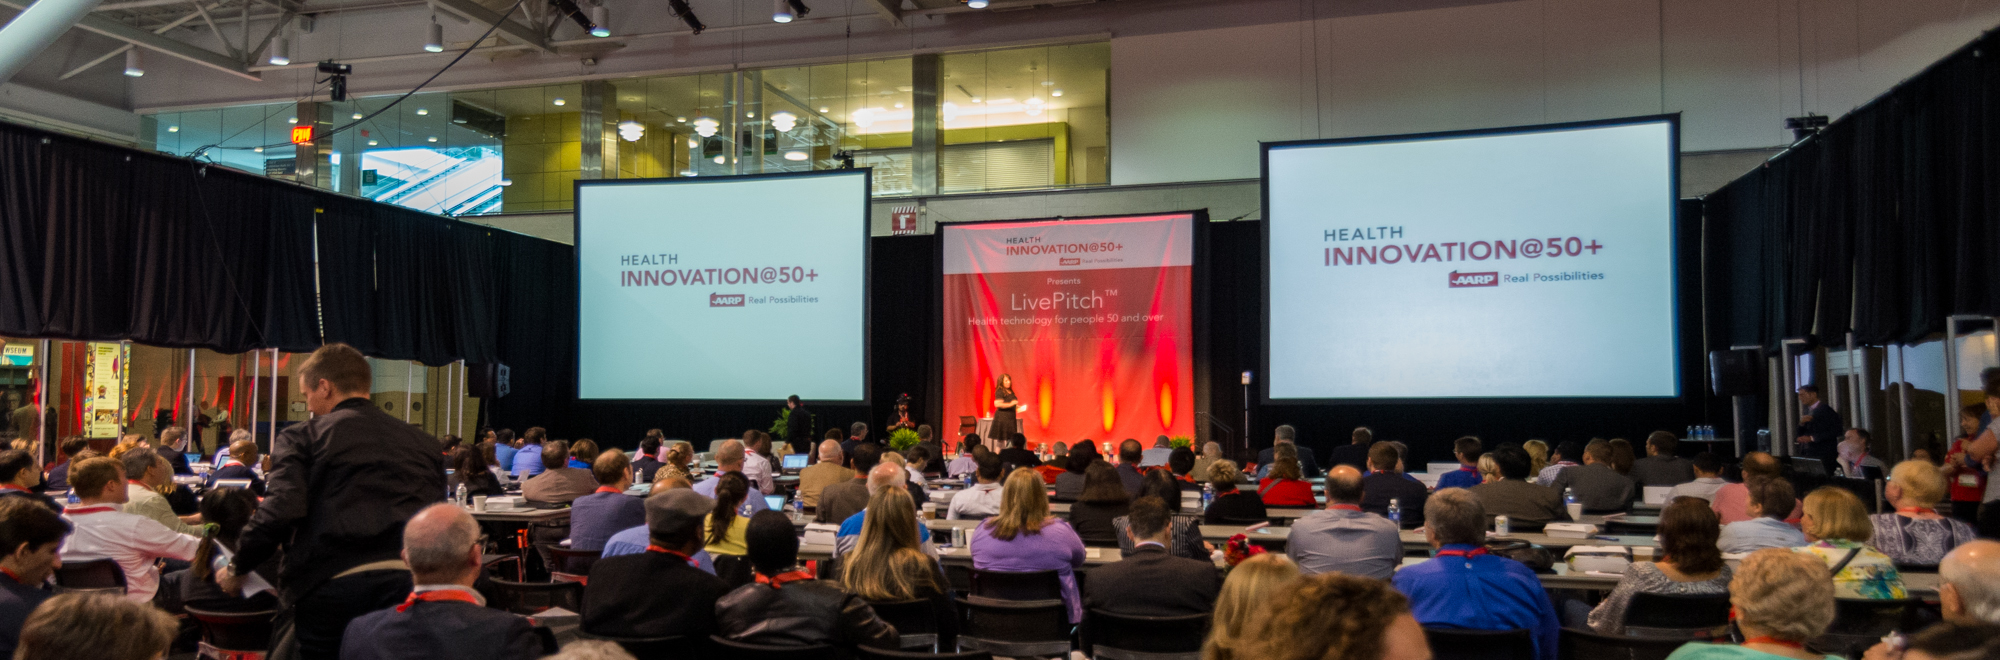 aarp-health-innovation-livepitch-2014